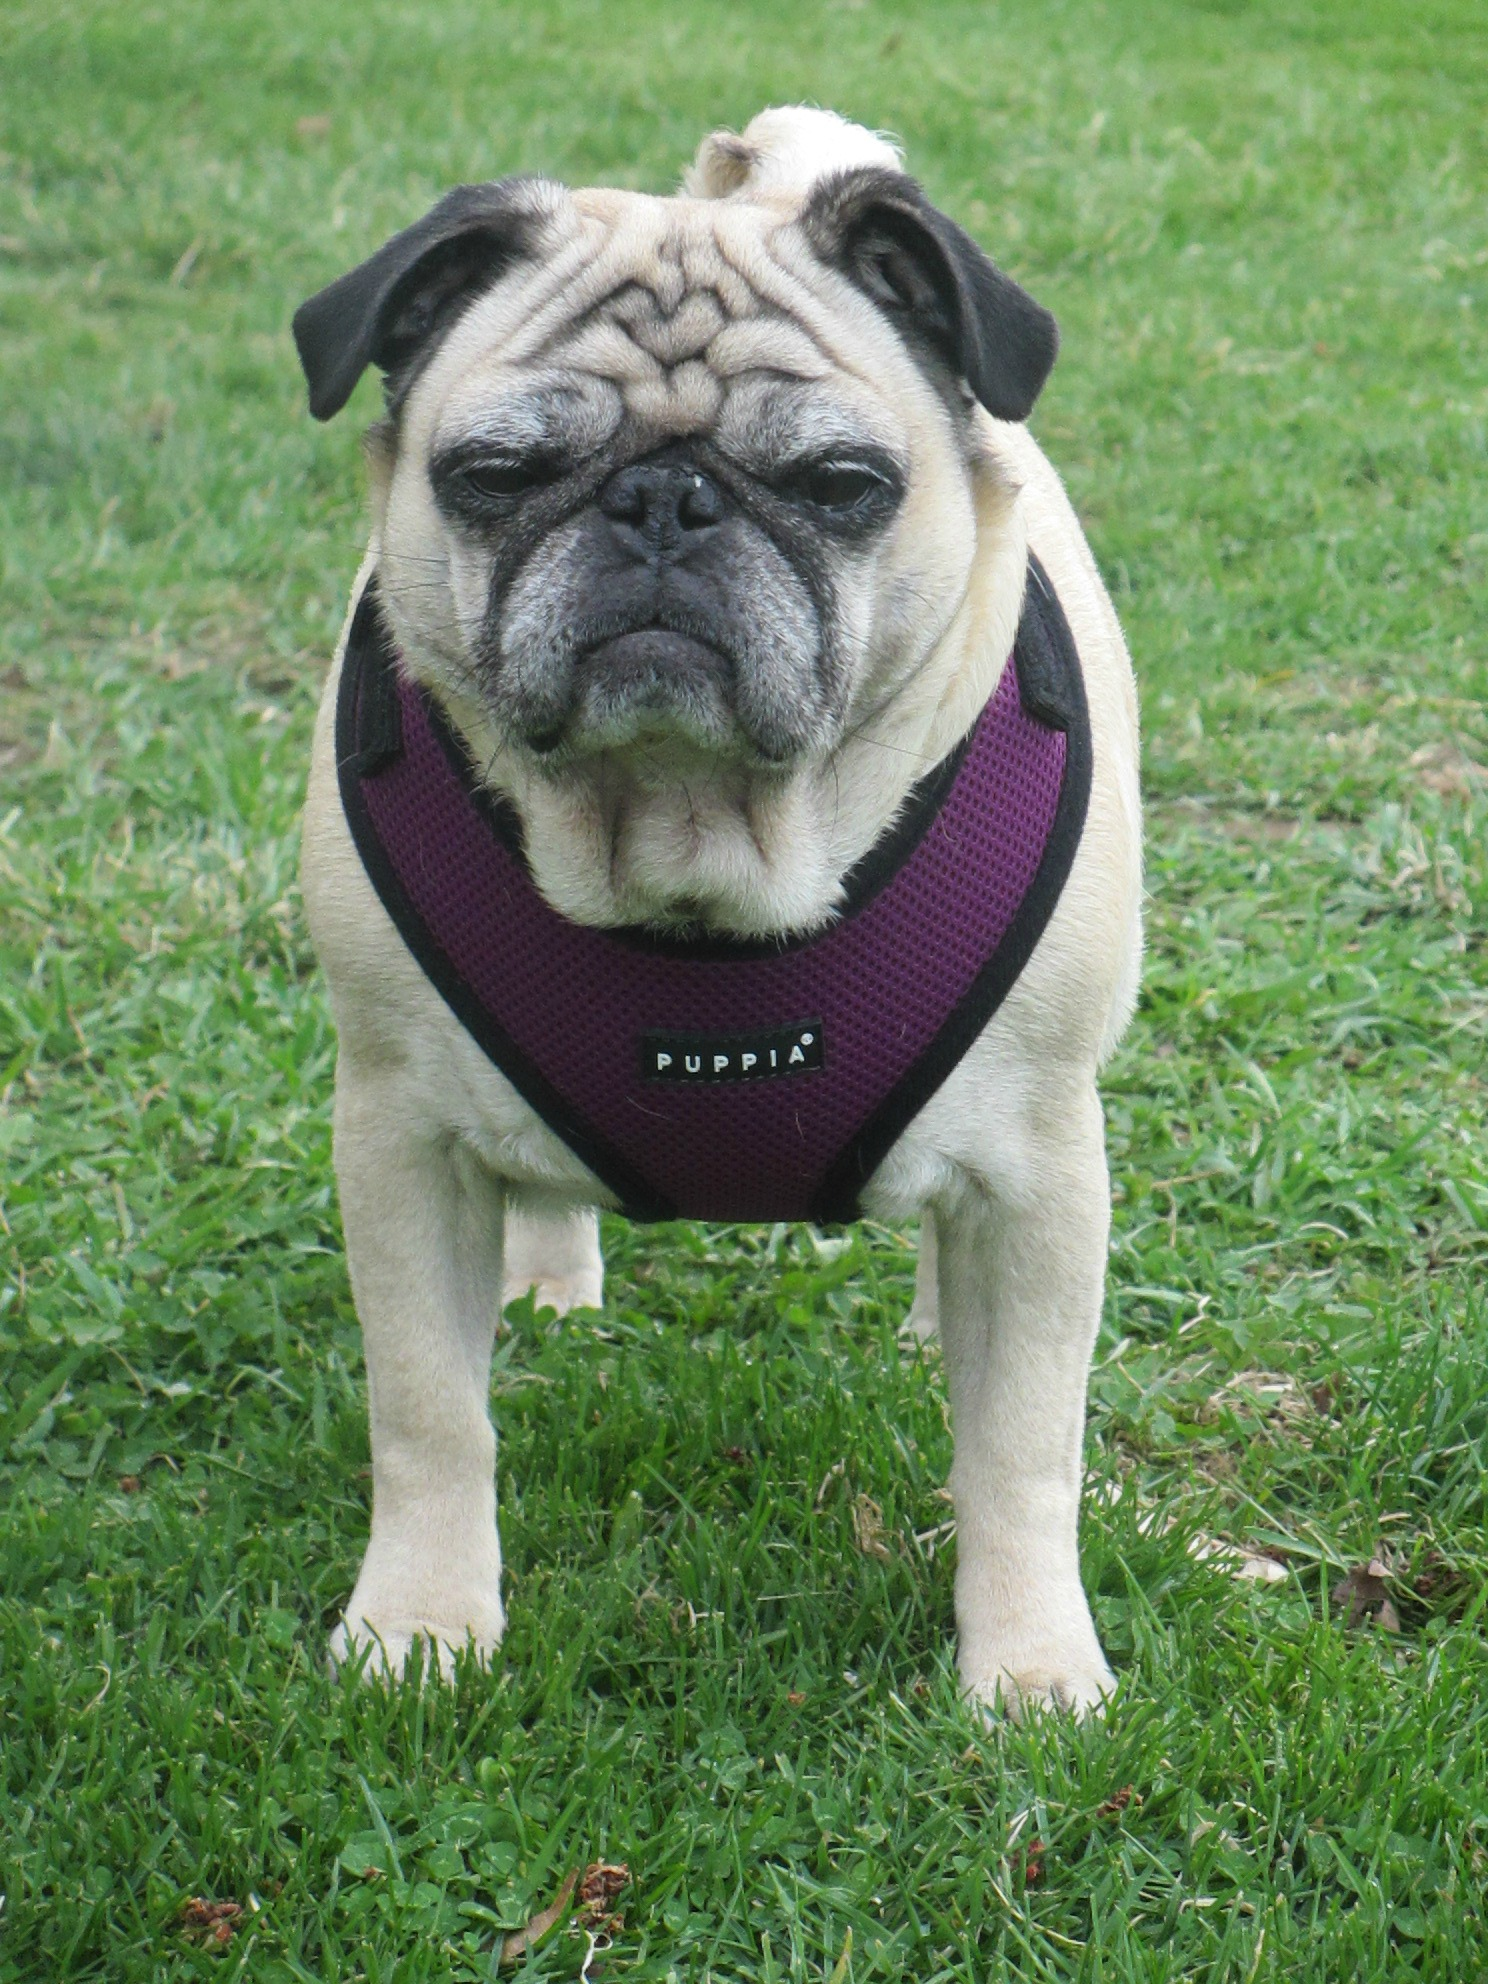 the best fitting harnesses for pugs puppia ritefit review from doggie couture shop emily reviews. Black Bedroom Furniture Sets. Home Design Ideas